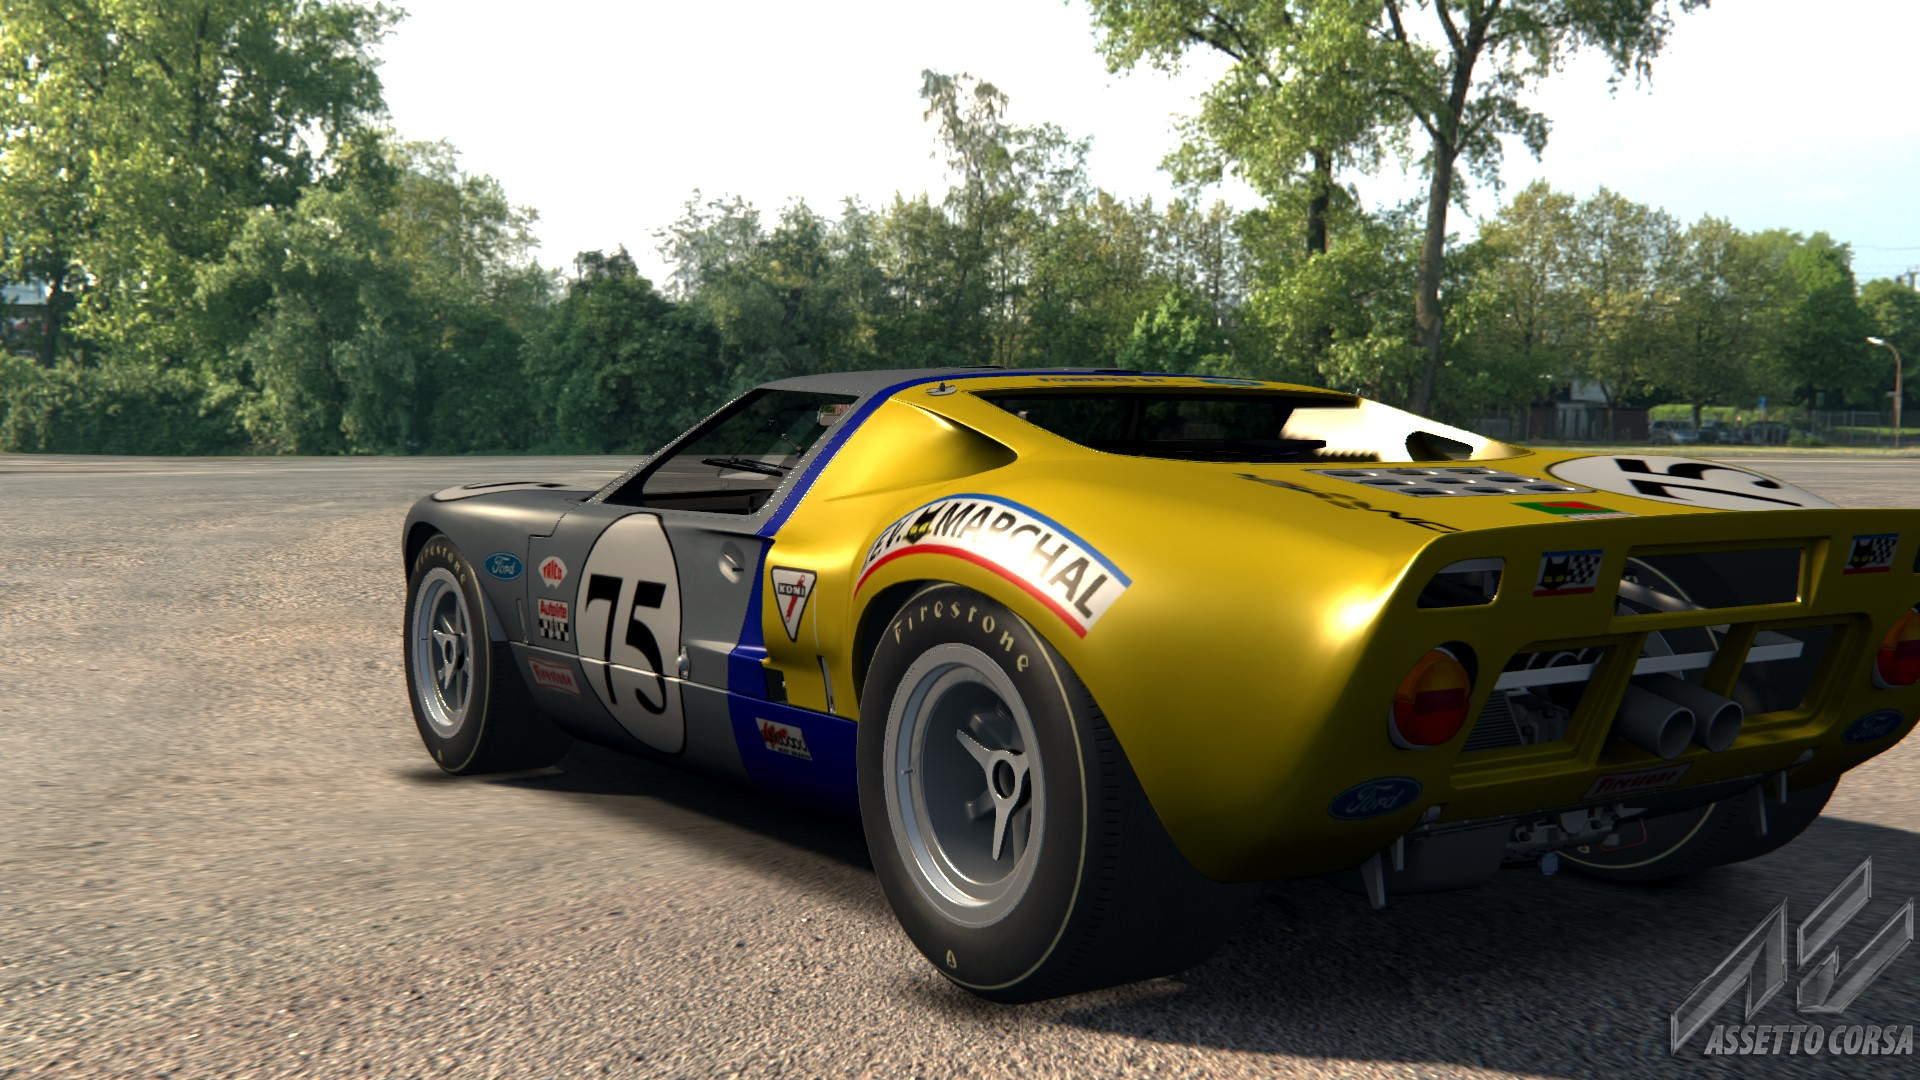 Showroom_ks_ford_gt40_12-9-2015-19-2-5.jpg